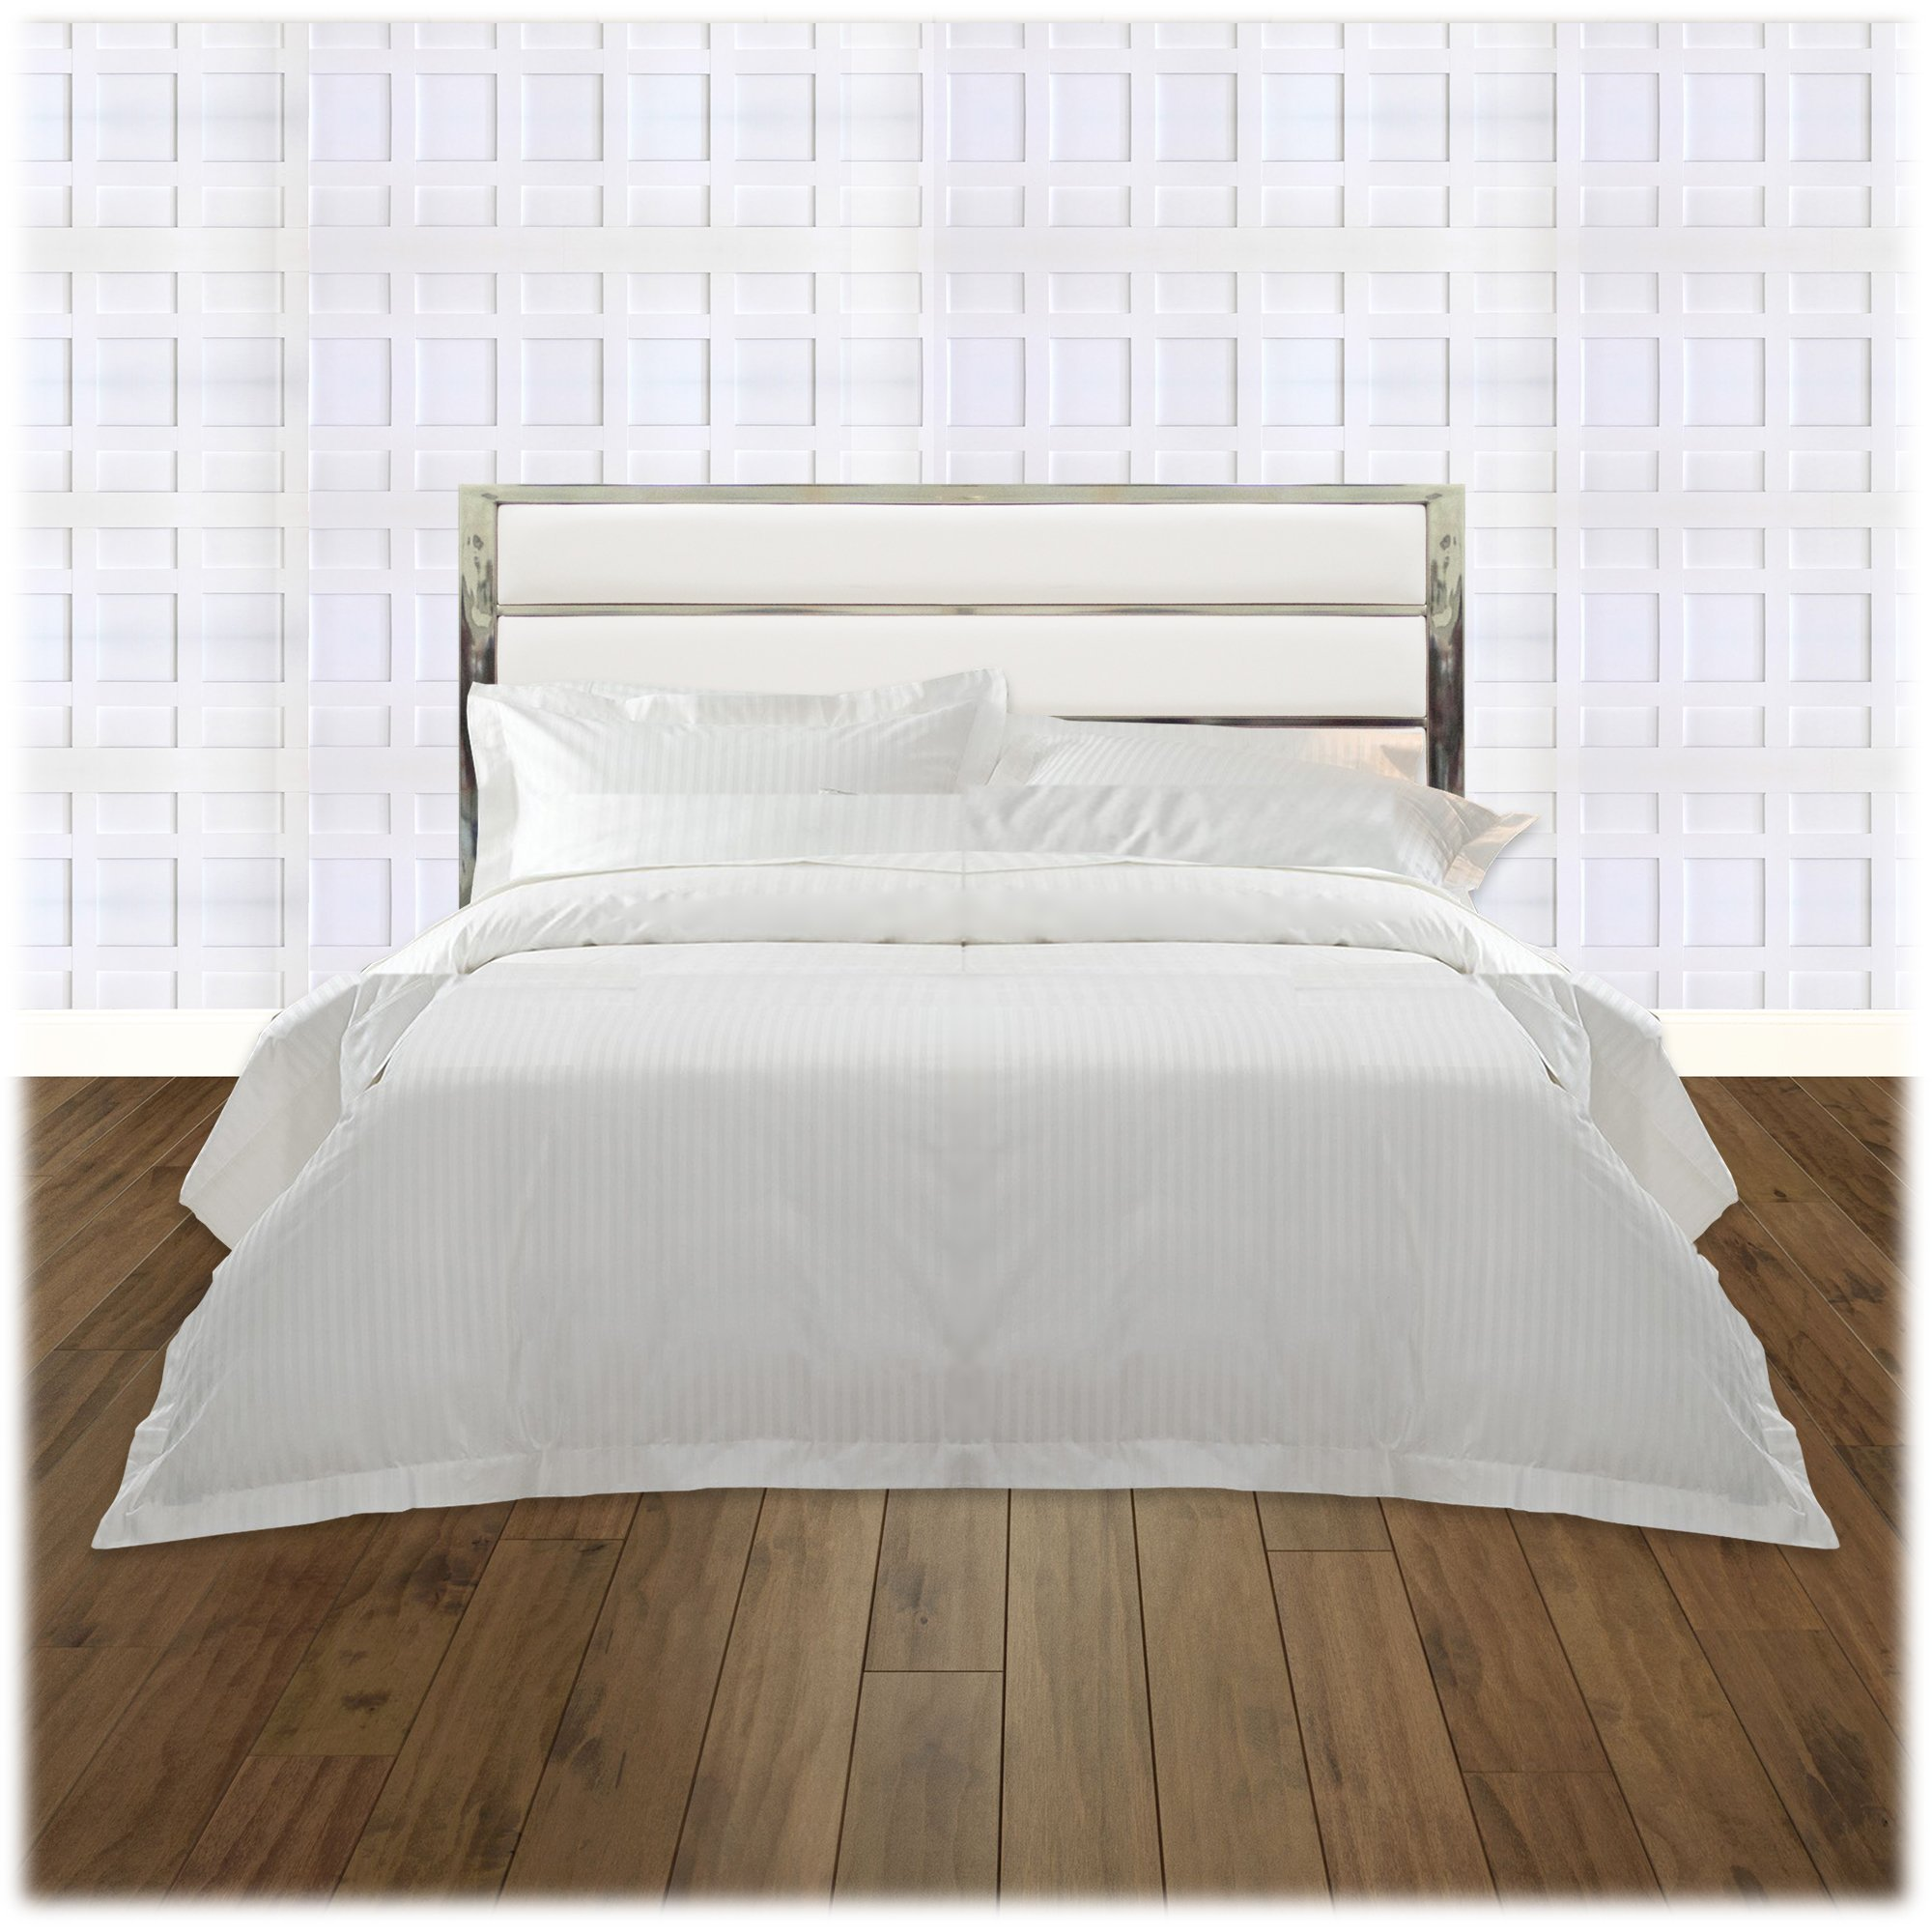 Fashion Bed Group B72526 Impulse Metal Headboard Panel with White Upholstery, Chrome Finish, King by Fashion Bed Group (Image #4)